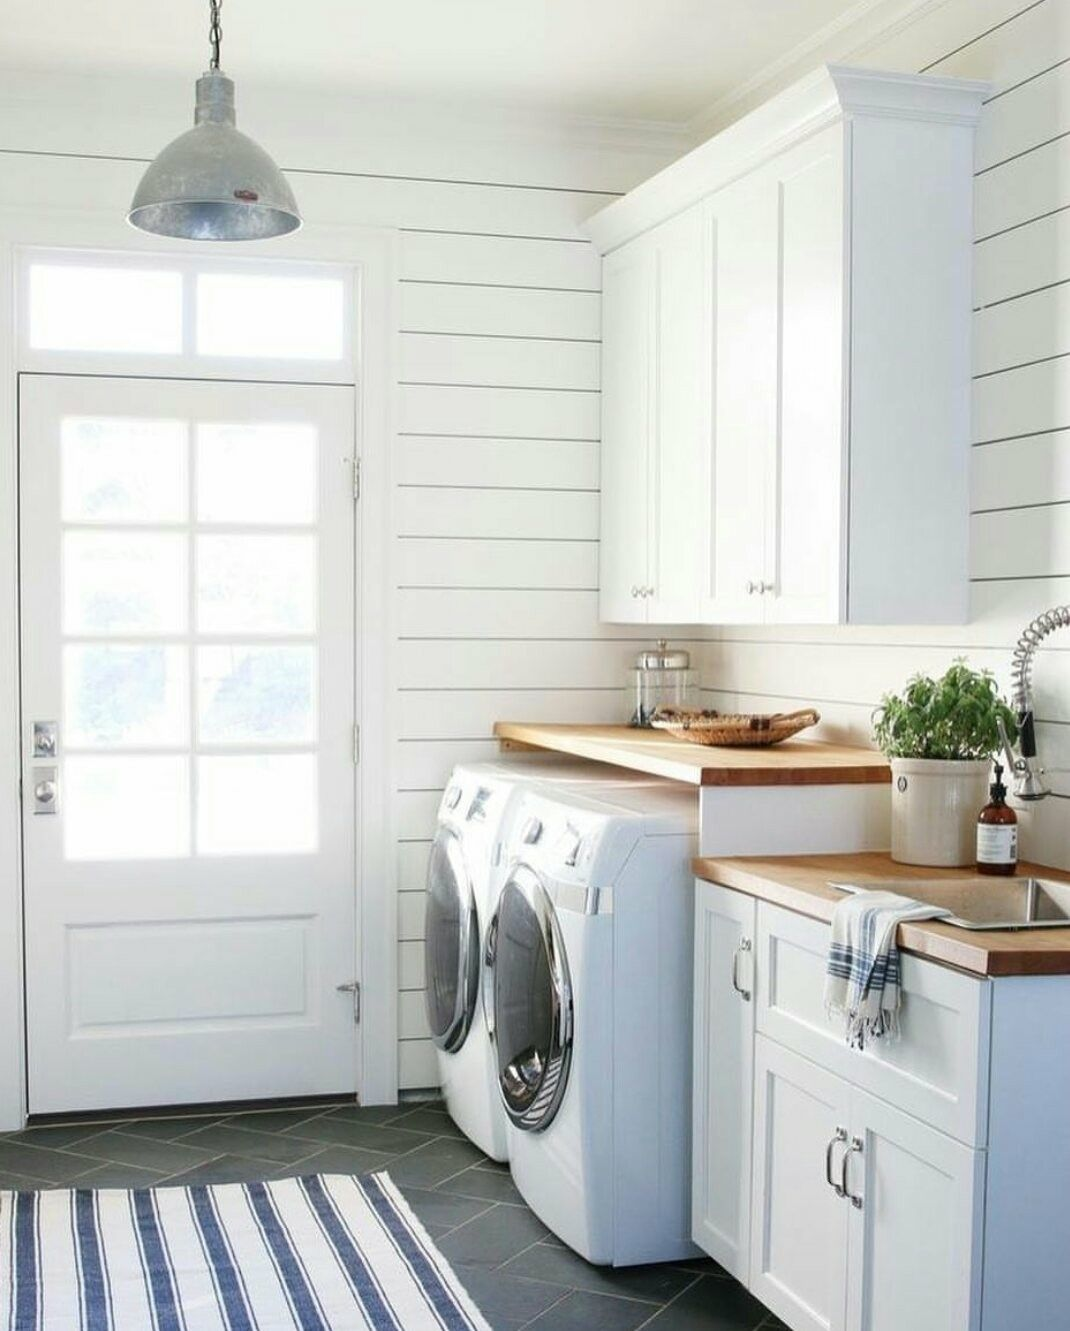 Inspirational Laundry Room Floor Cabinets